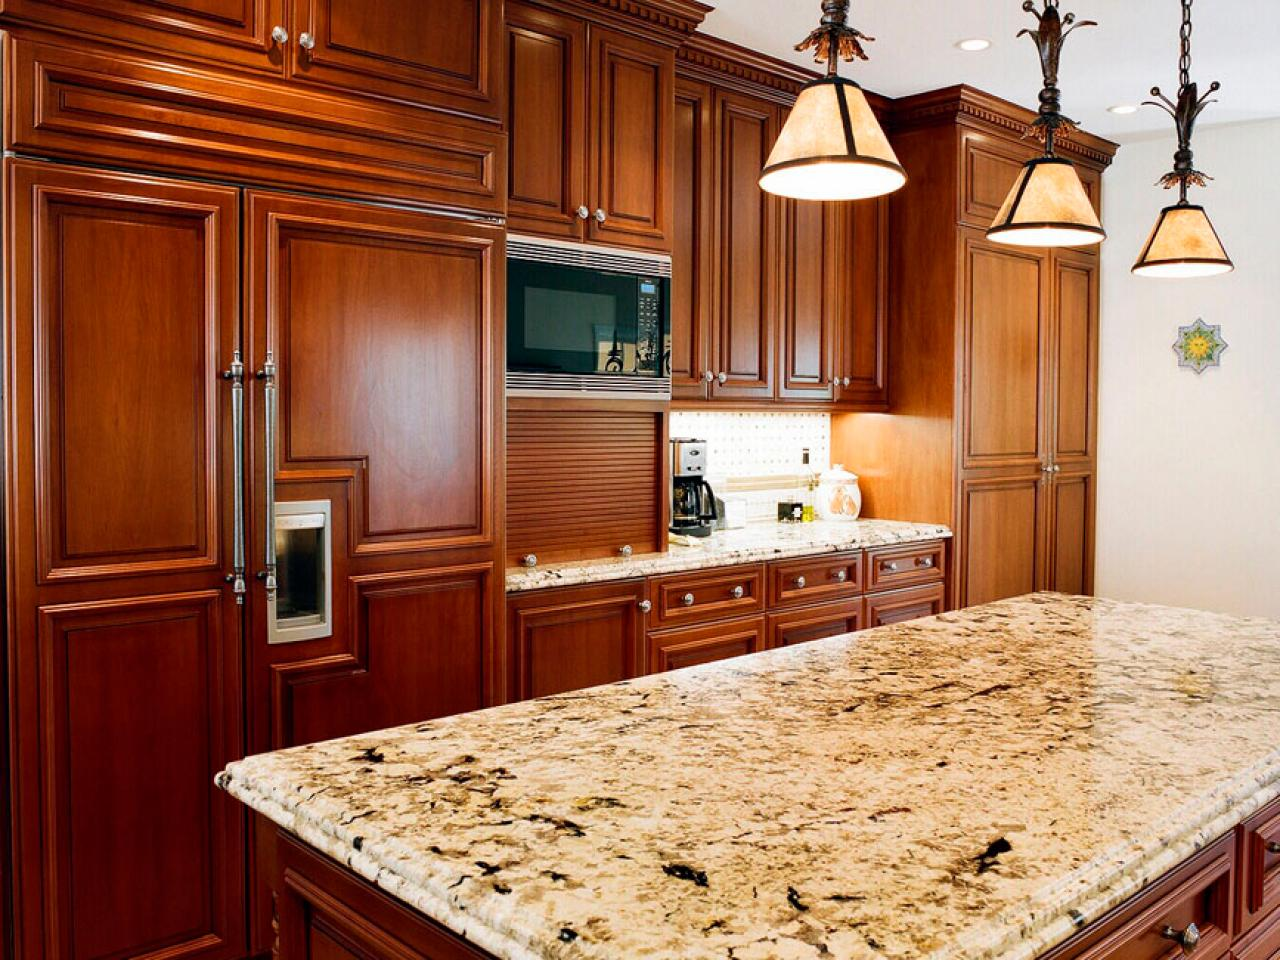 popular valuable image and to files styles kitchen under ideas guide stunning remodel a appealing cost average for cabinets huffpost remodeling